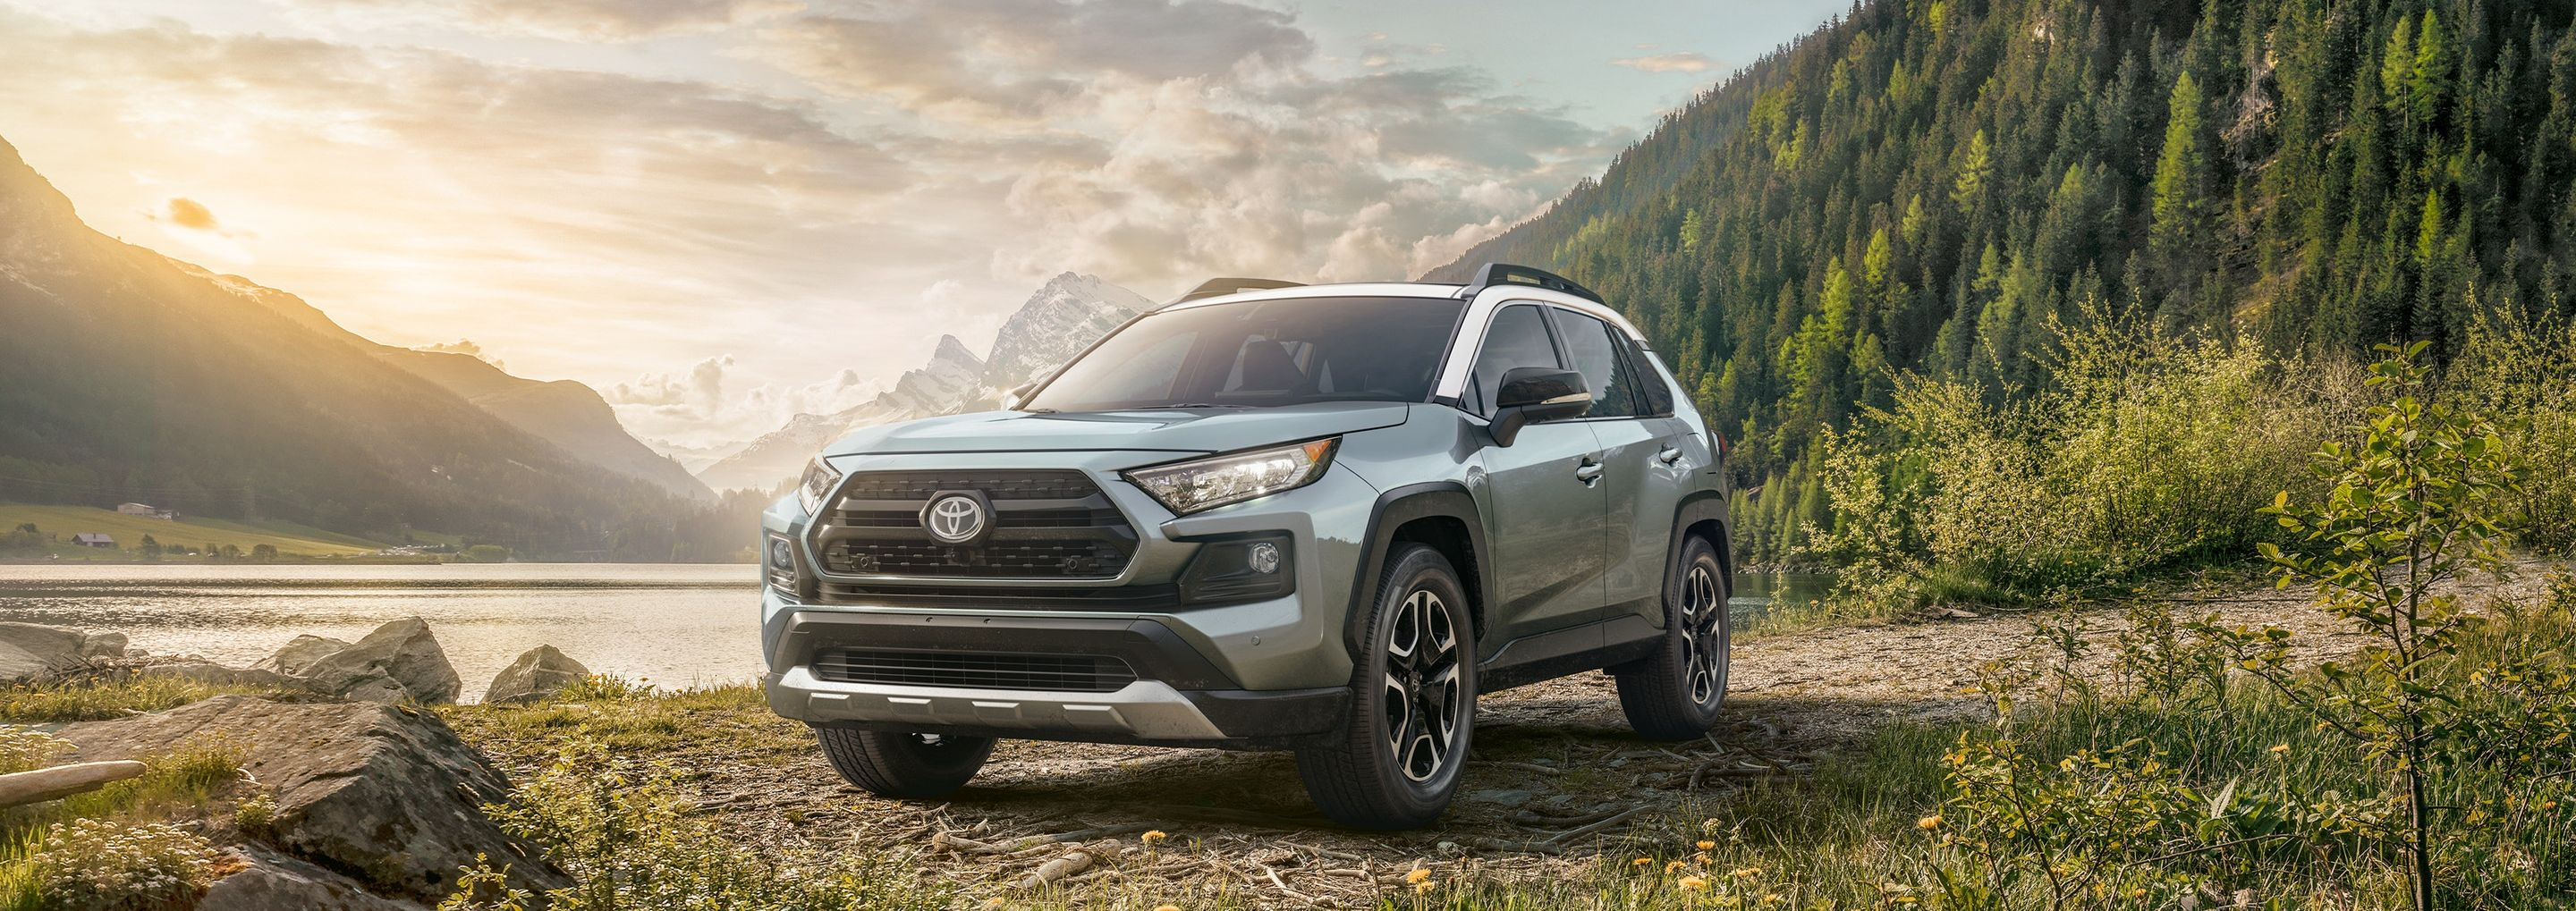 2019 Toyota RAV4 Leasing near Oak Brook, IL